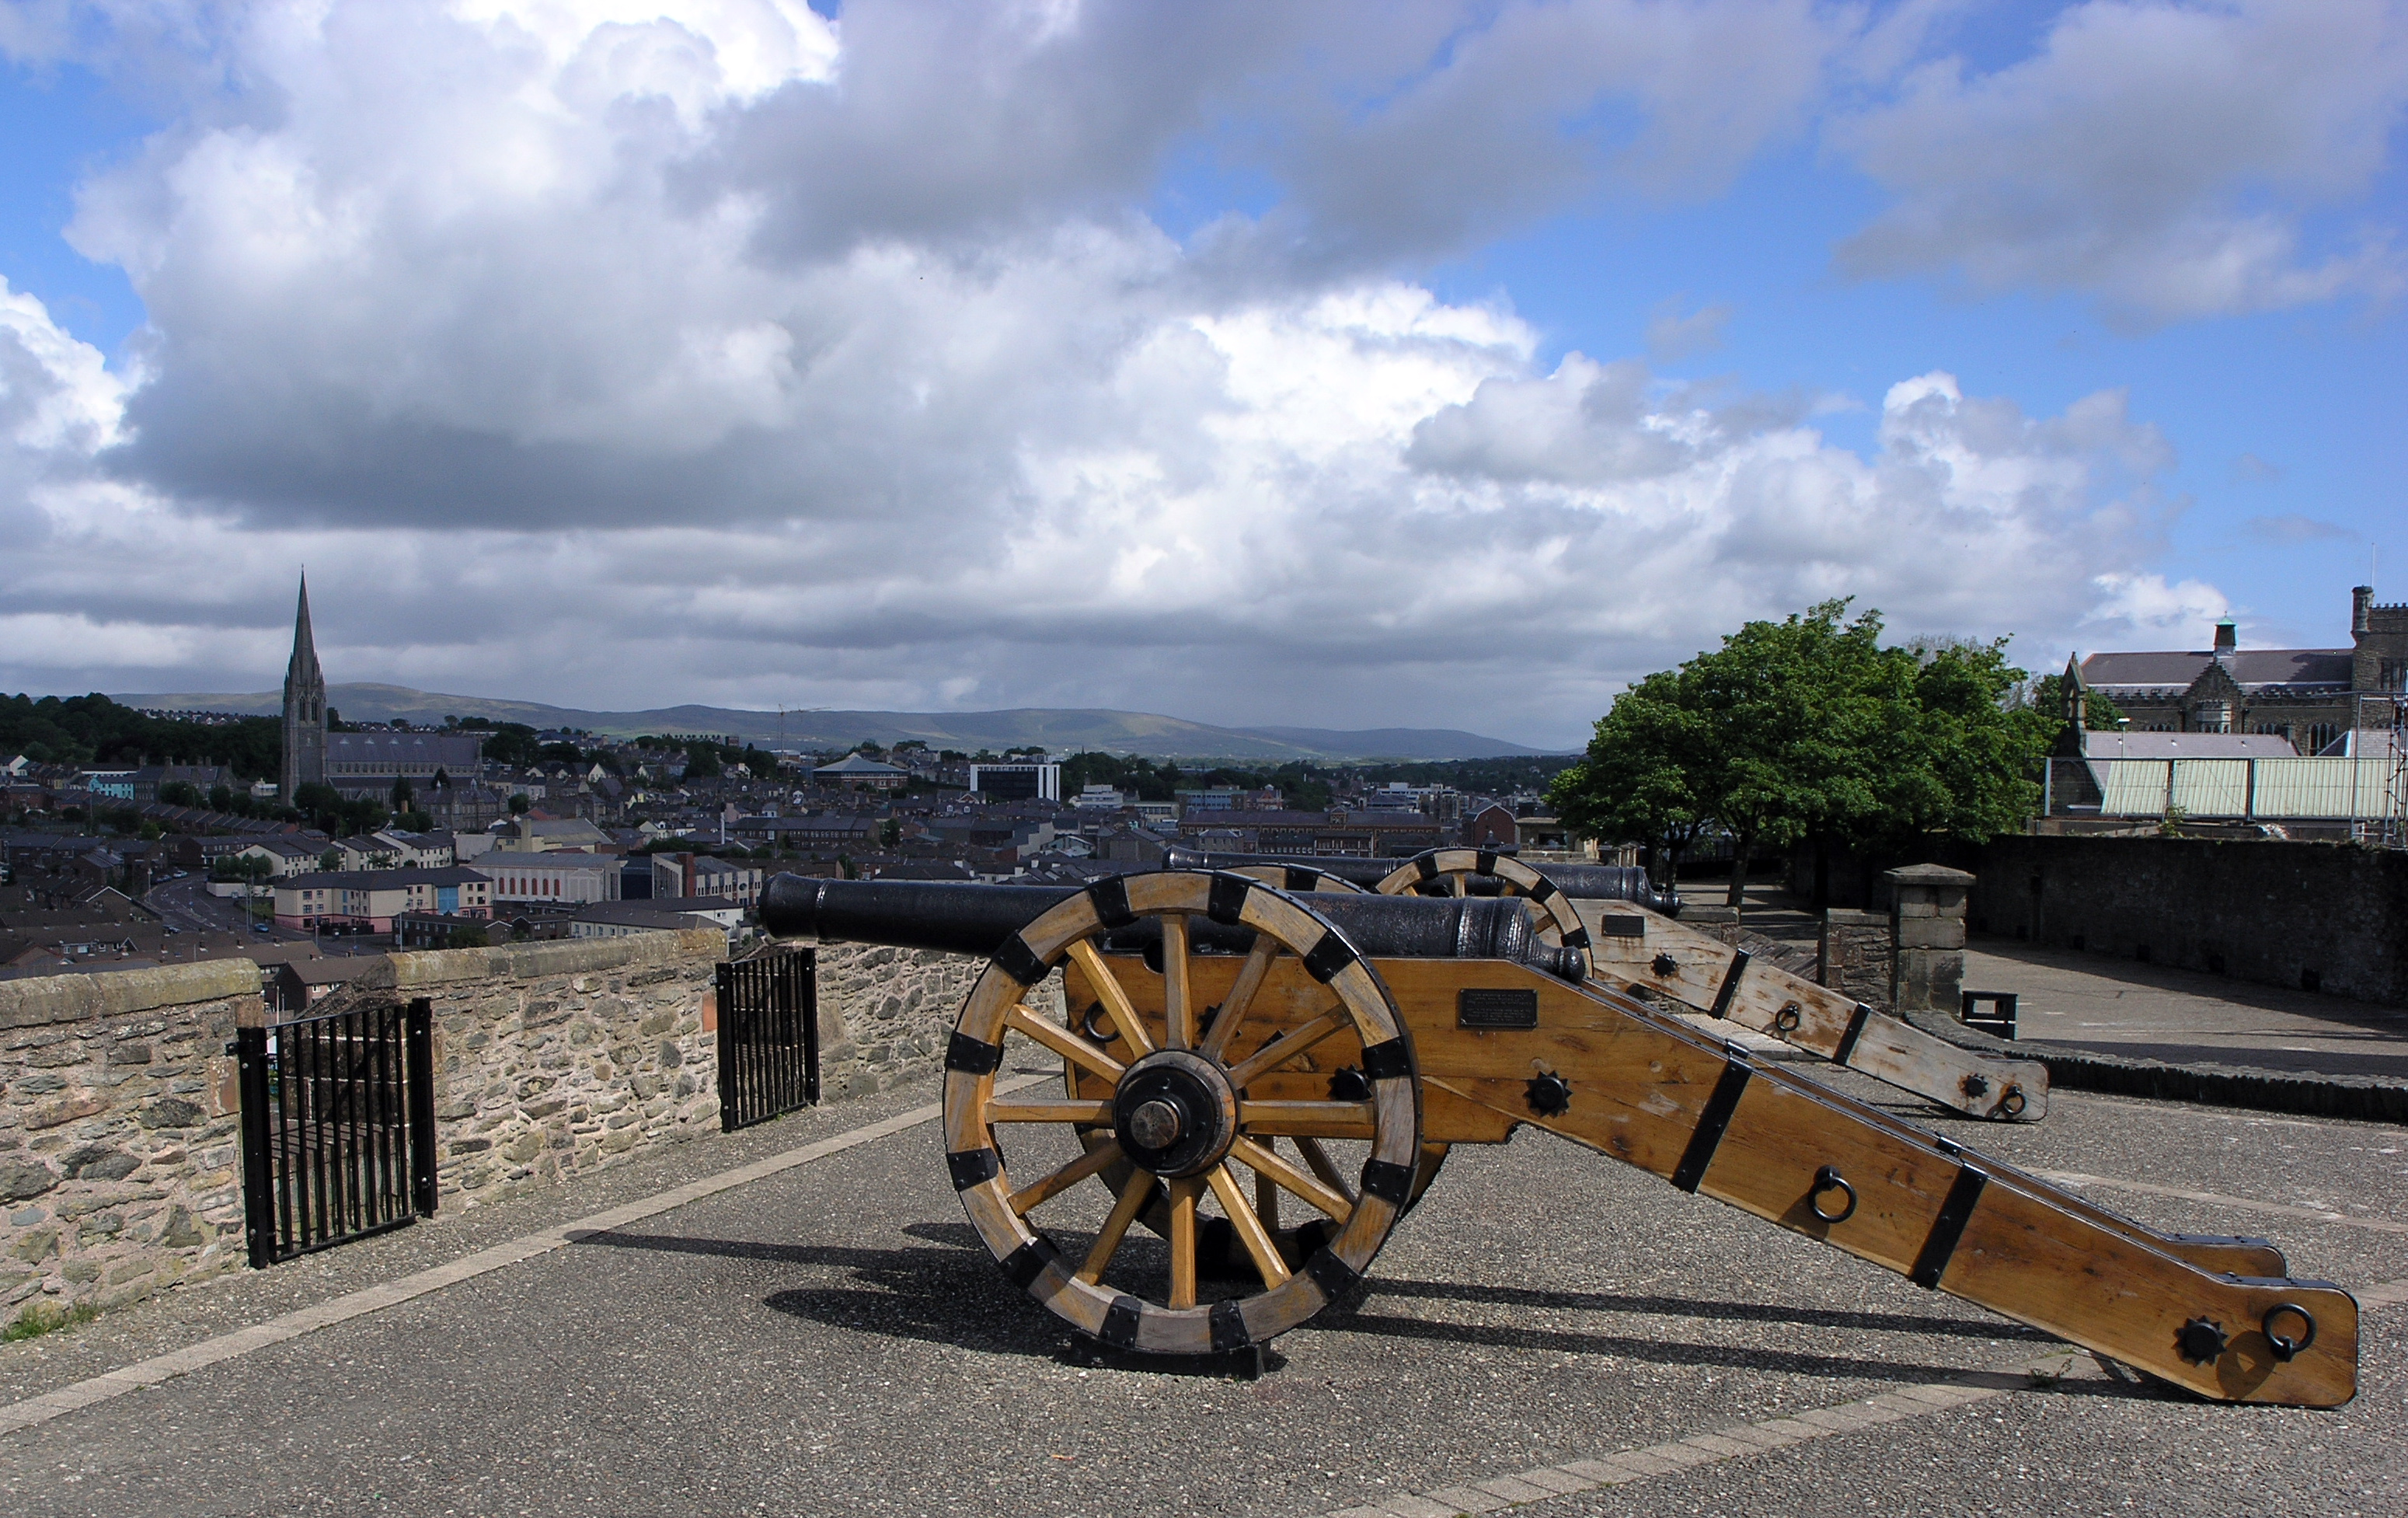 A portion of the city walls of Derry, originally built in 1613-1619 to defend the plantation settlement there.